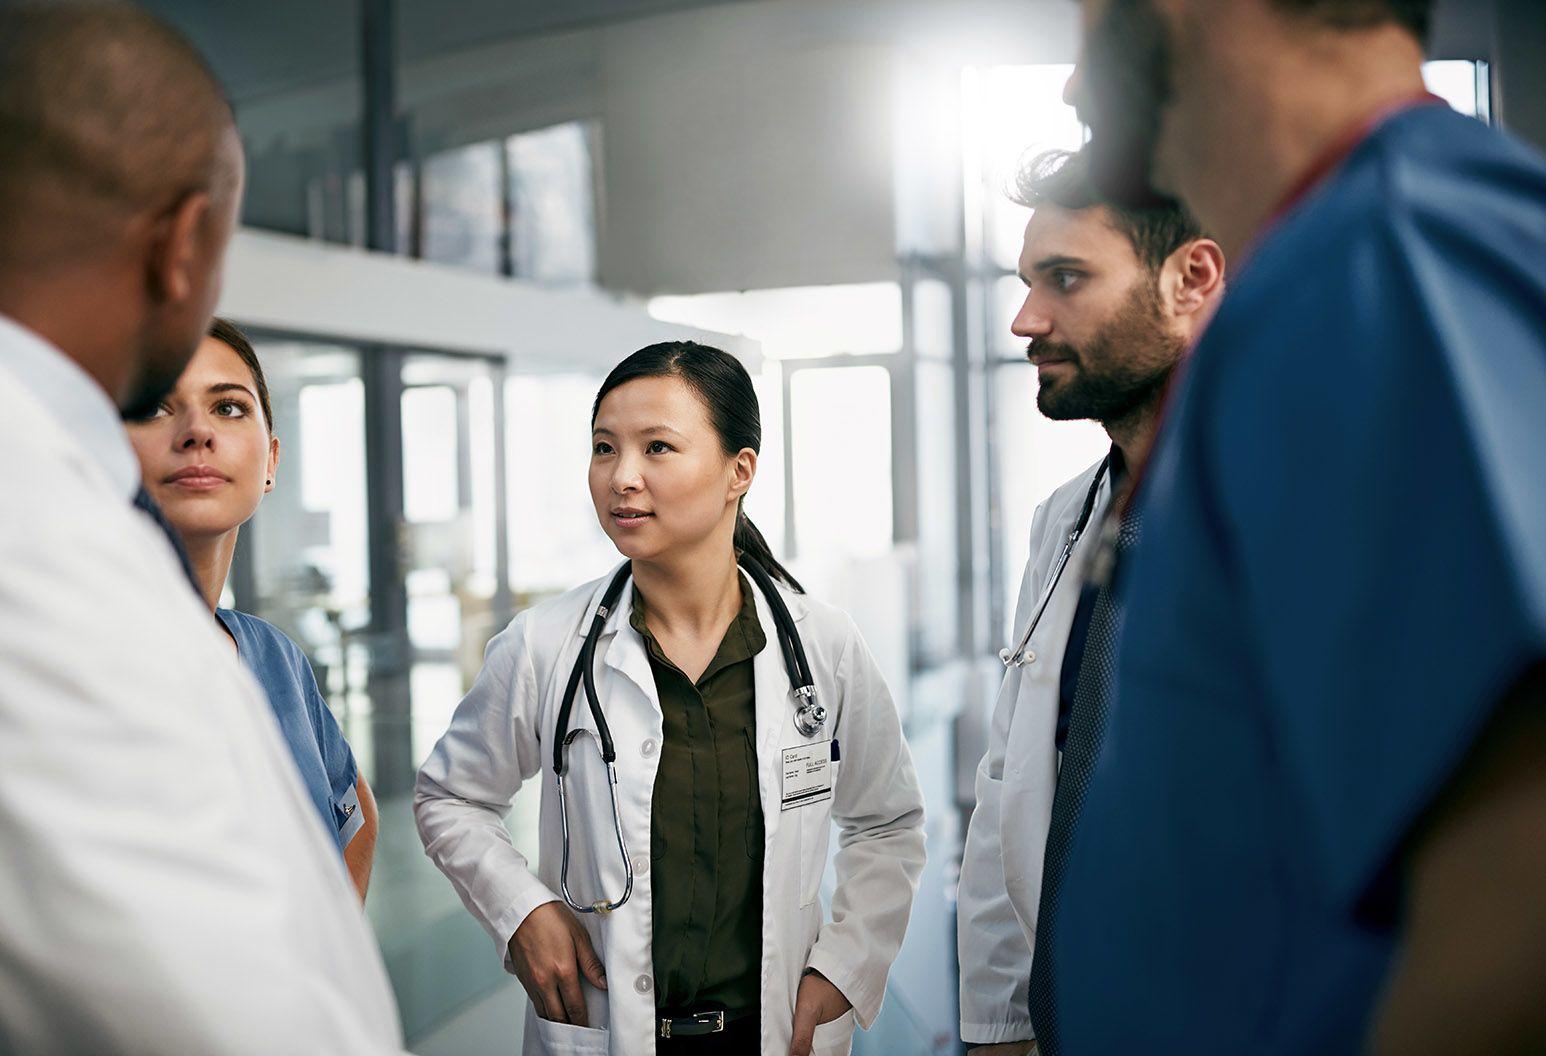 A team of doctors stand in a circle discussing a case. The focus is on a young asian female doctor wearing a dark shirt, white lab coat, and stethoscope around her neck.